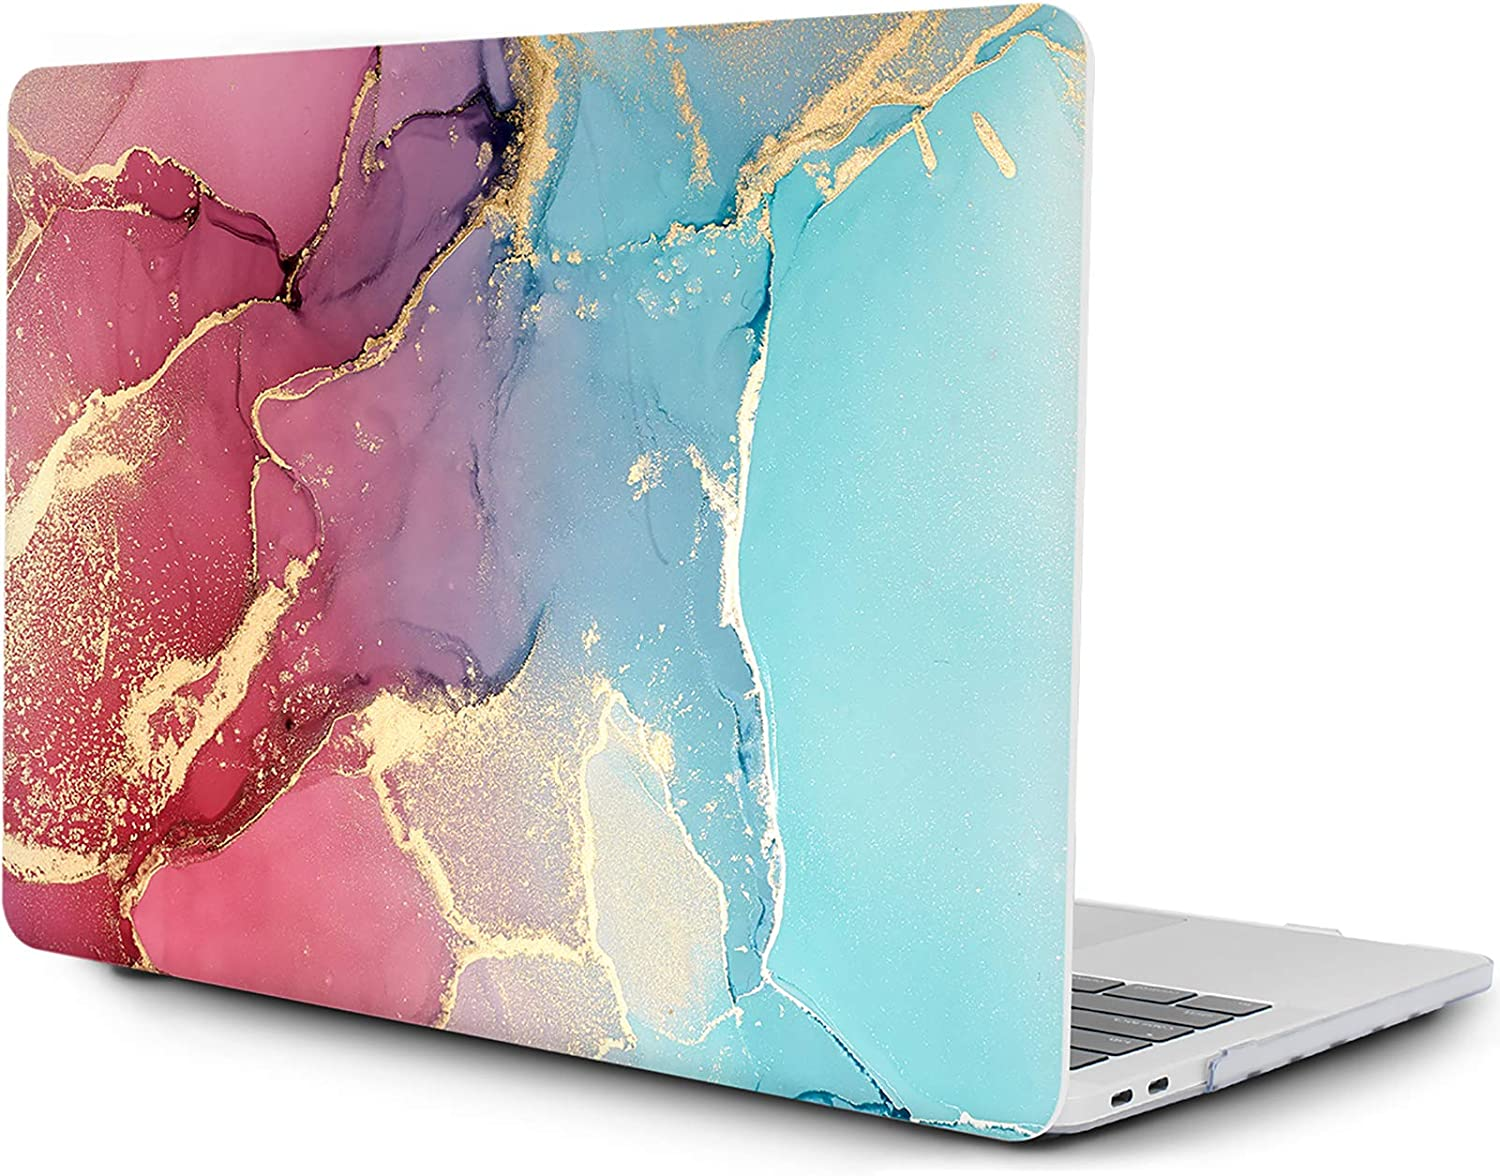 OneGET MacBook Pro 13 Inch Case with Touch Bar Laptop Case 2016 2019 A1989 A1706 A1708 A2159 MacBook Pro Cover for MacBook Pro 13 Inches Hard Shell Marble (A2159/A1989/A1706/A1708 Pro 13'', S180)